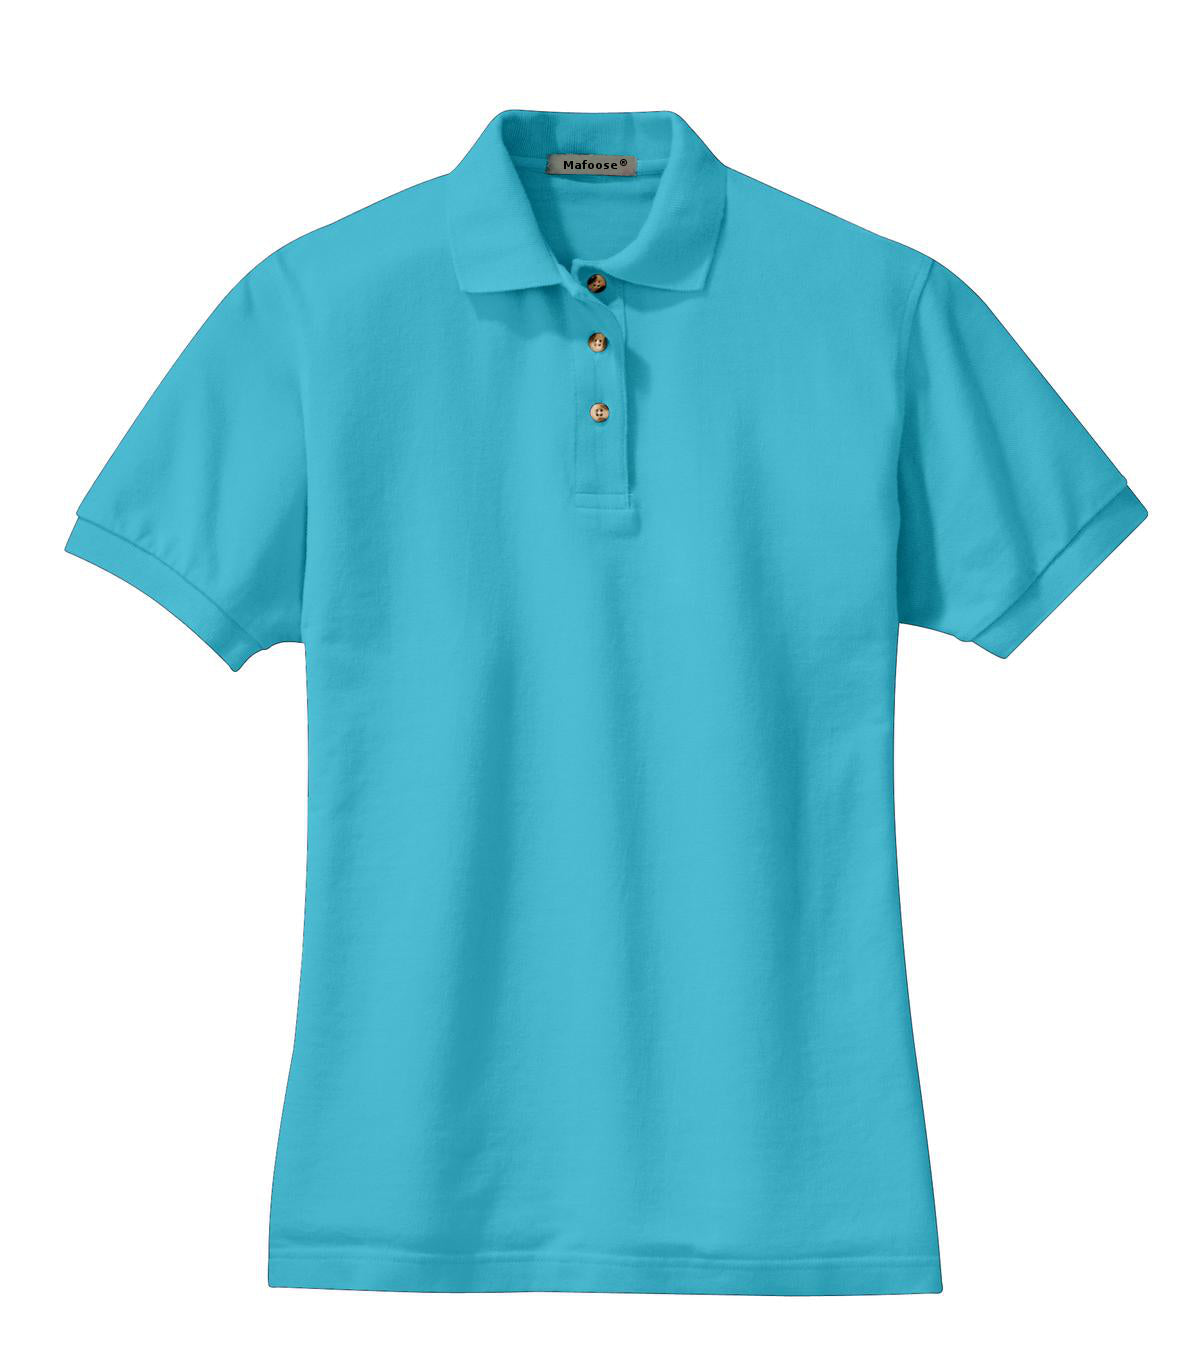 Mafoose Women's Heavyweight Cotton Pique Polo Shirt Turquoise-Front